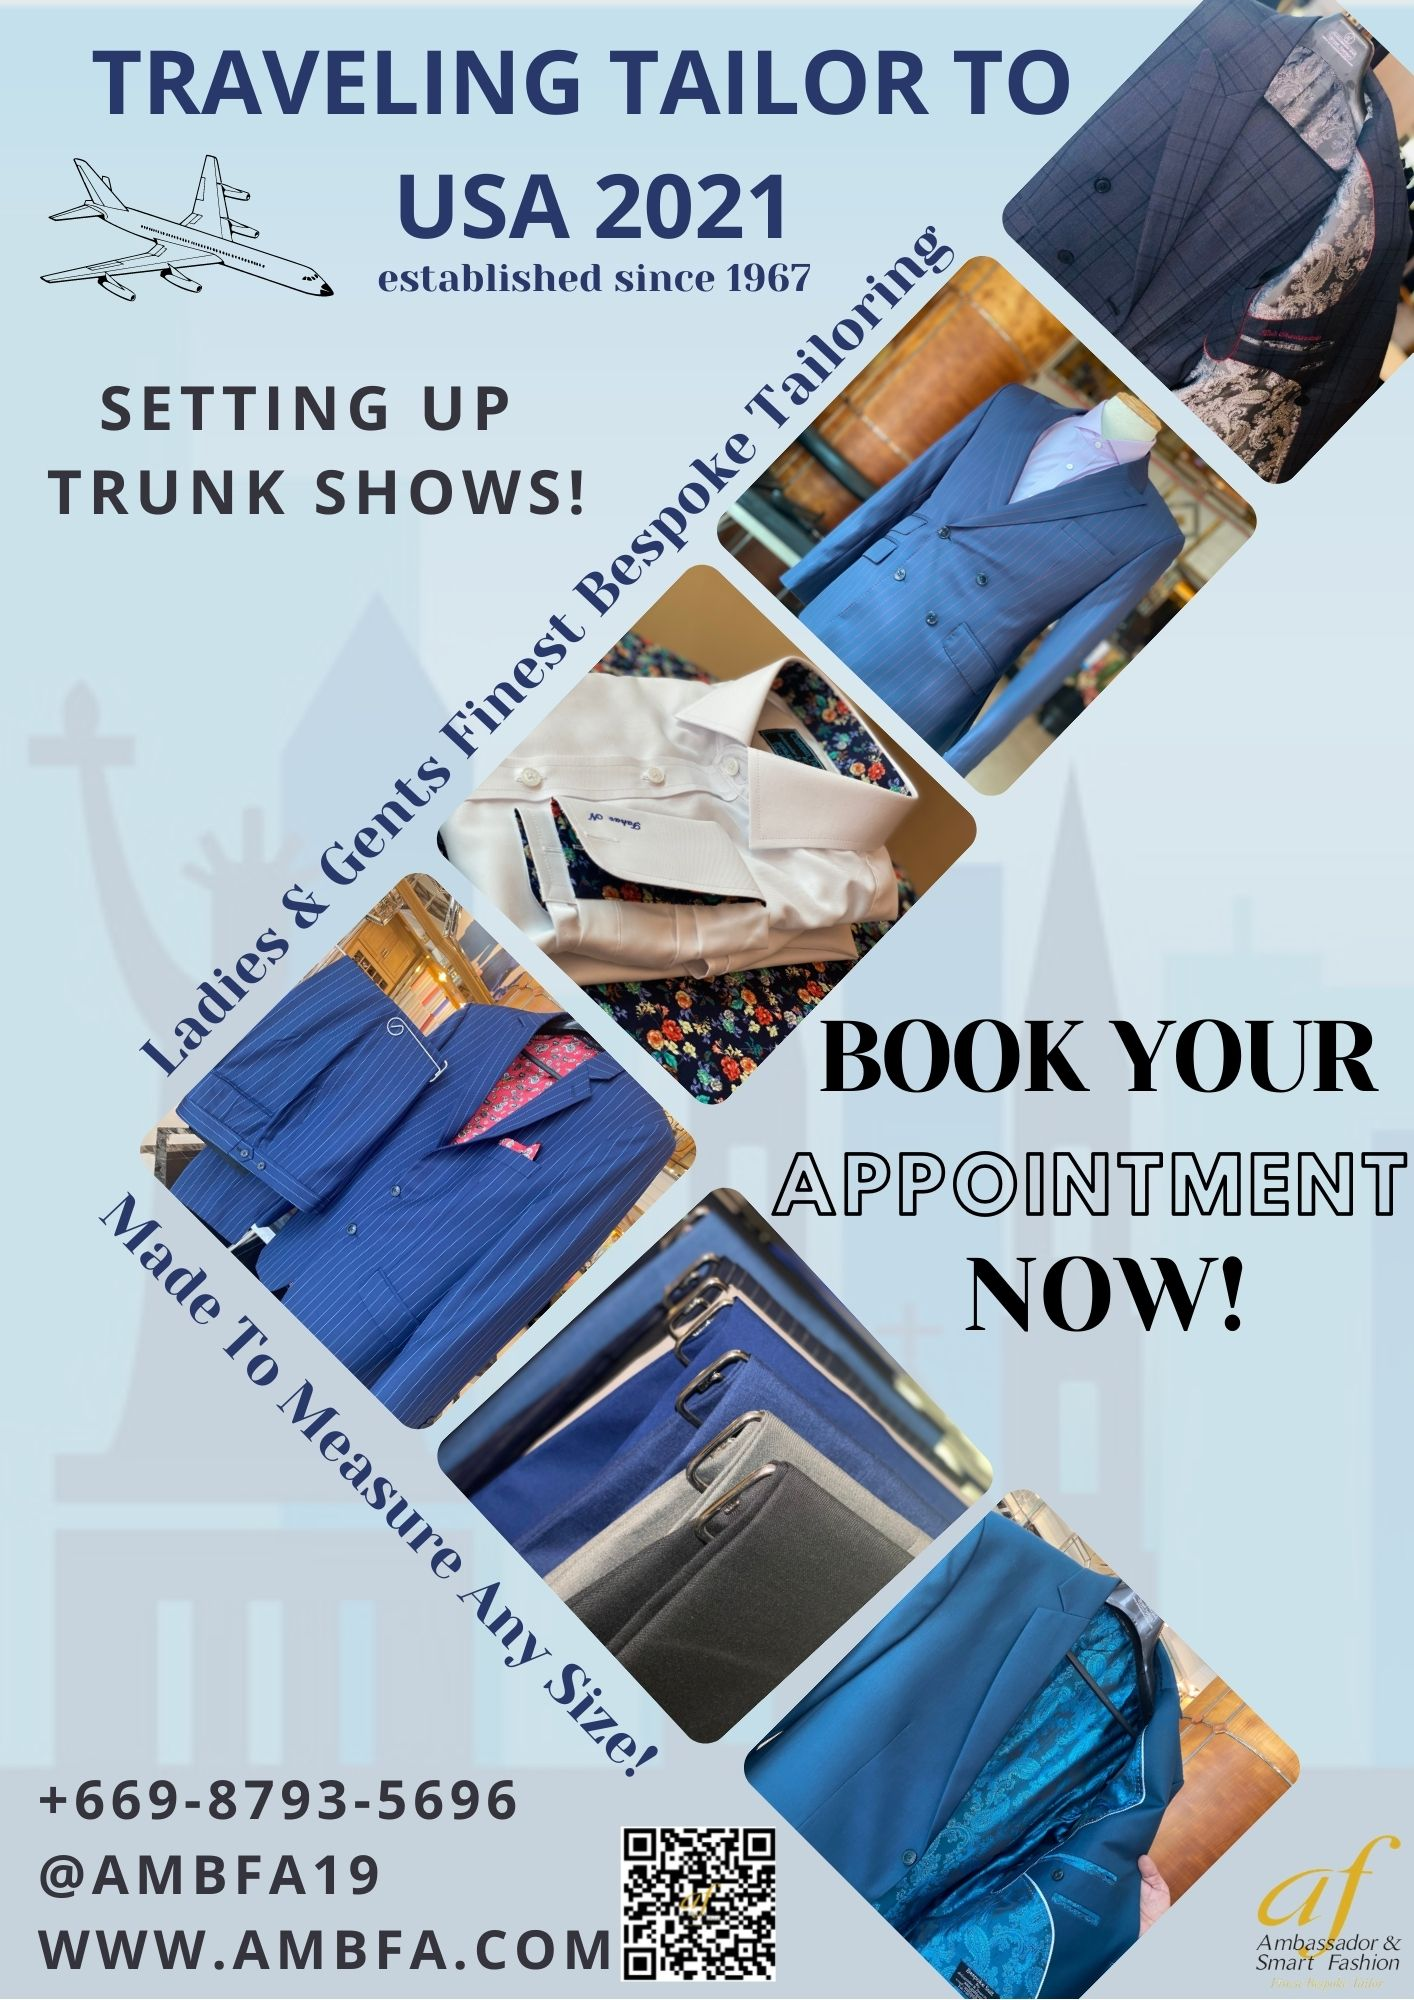 Traveling Professional Bespoke Tailor in USA 2021